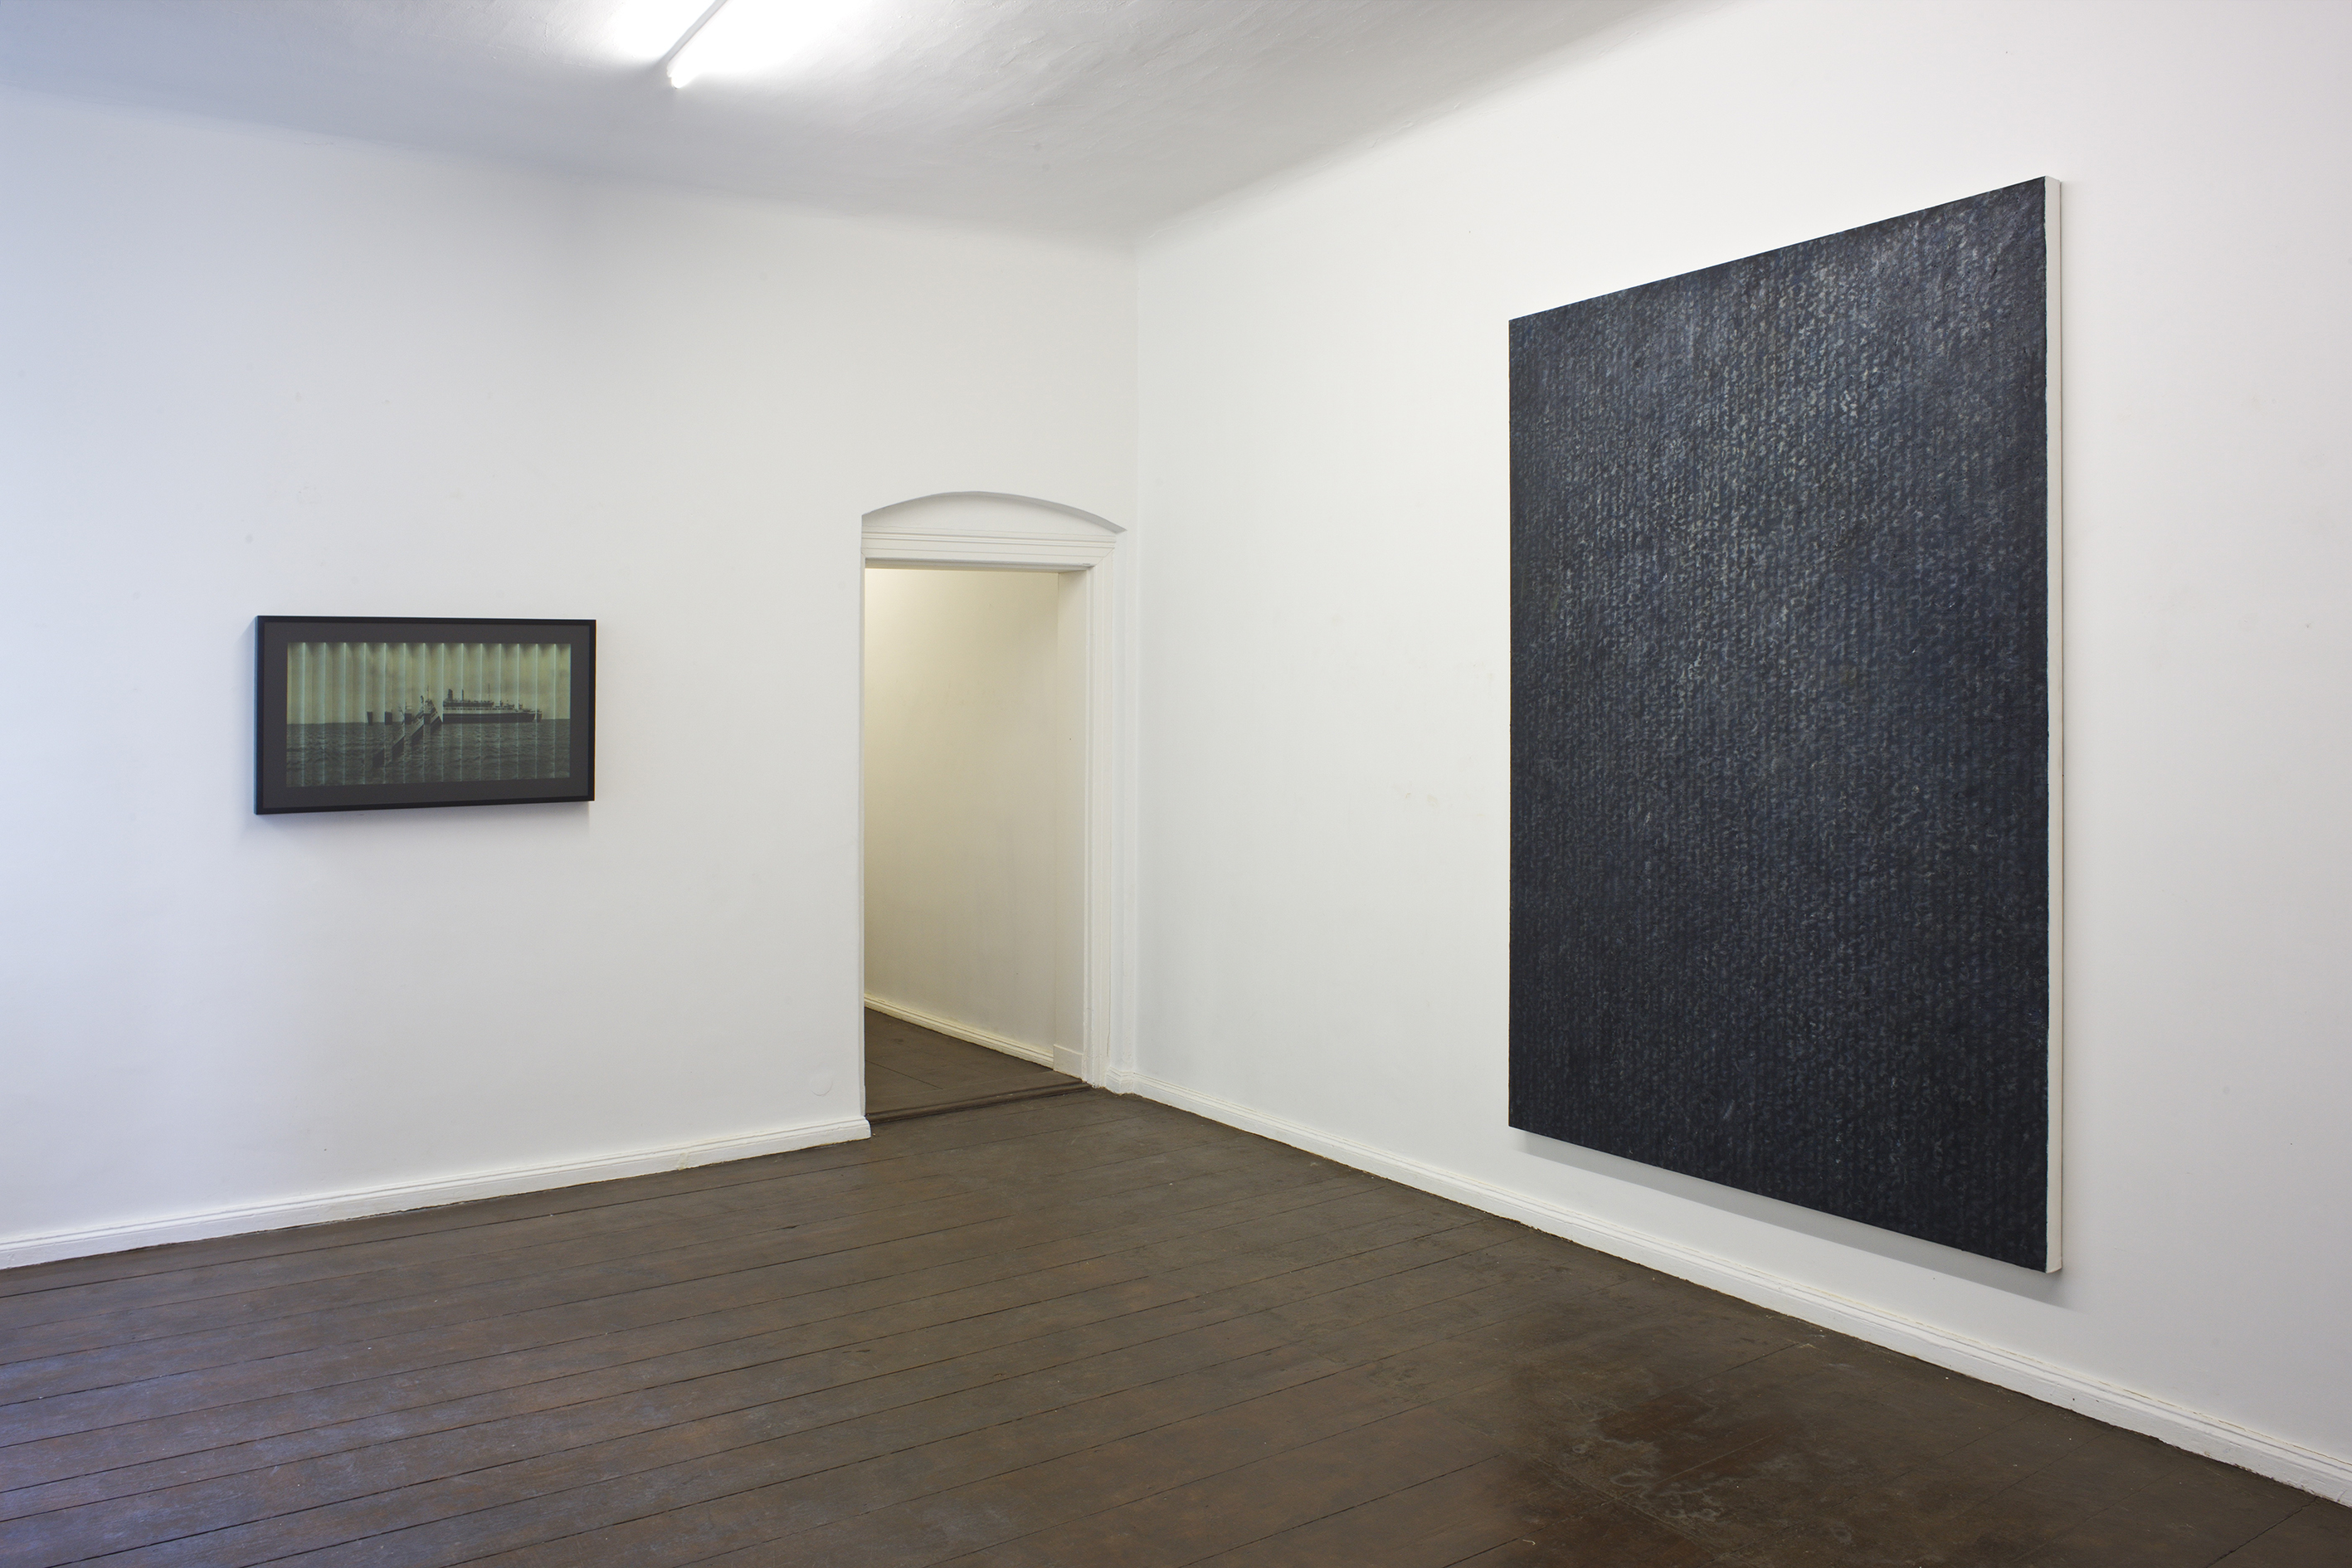 """Installation Views: """"Last Man Standing - After the Change"""", 2016 - Group Exhibition in Berlin Exhibition - Canvas 03 - Painting by Erik Andersen"""